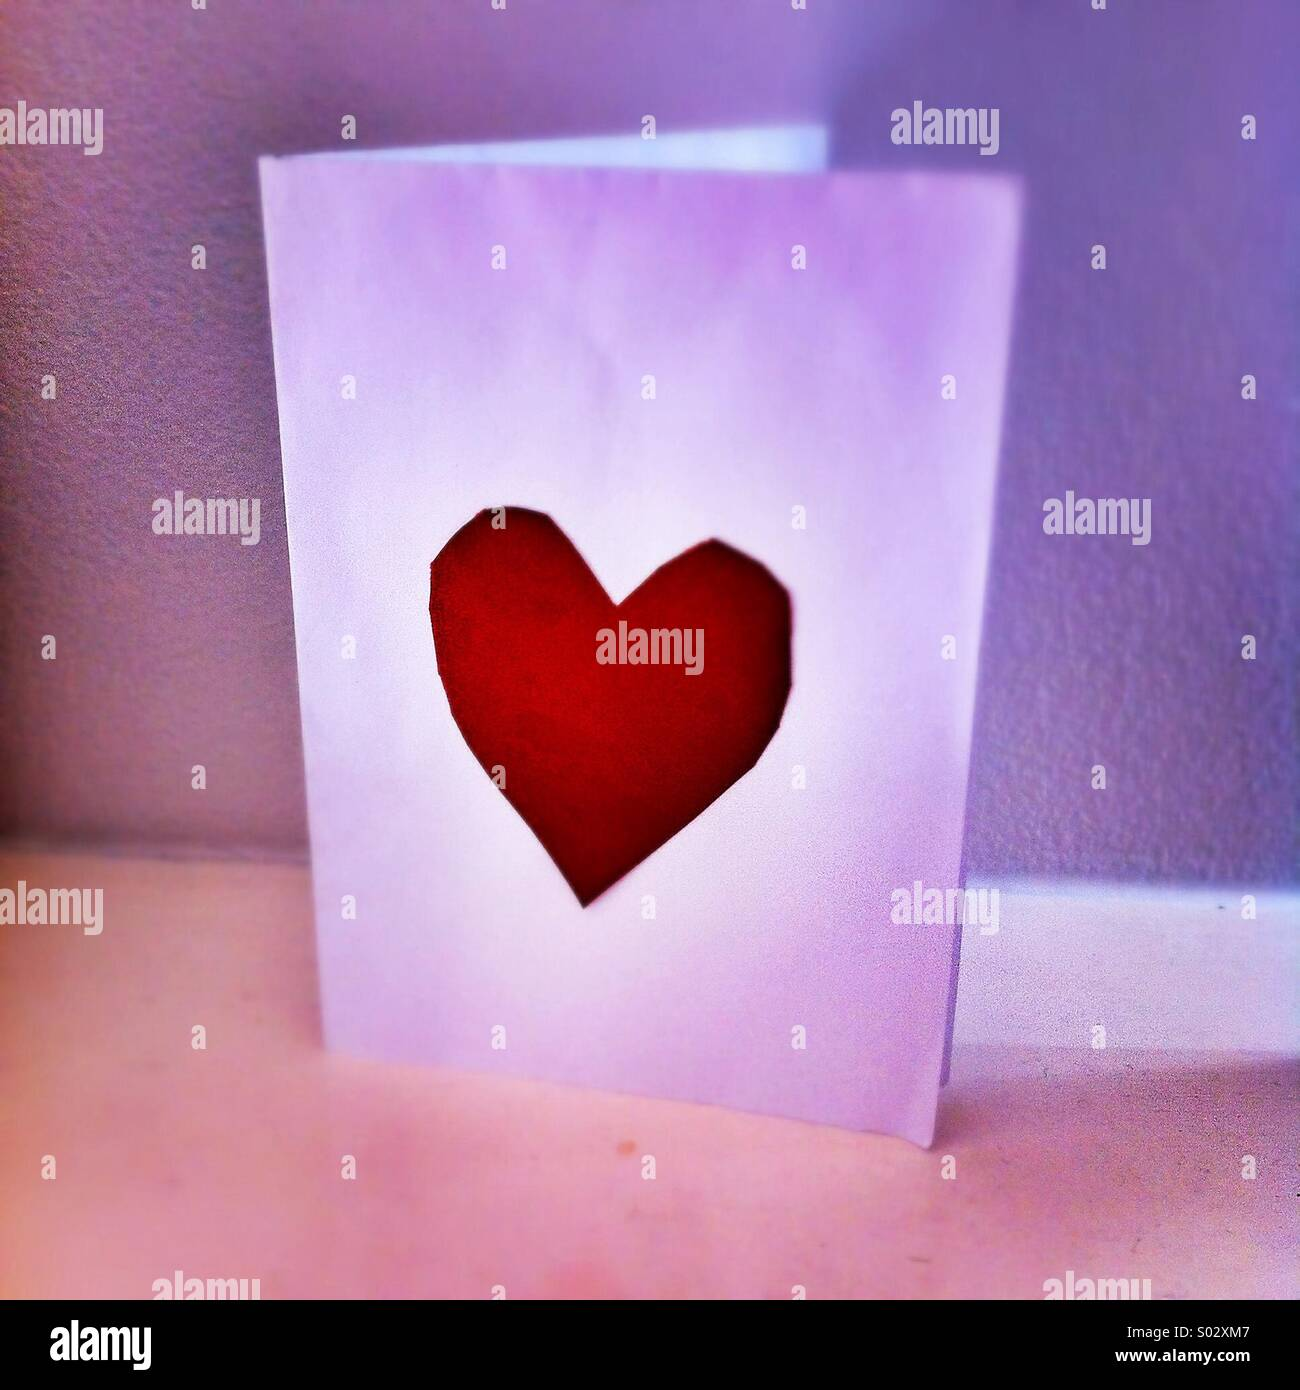 Valentines day card - Stock Image